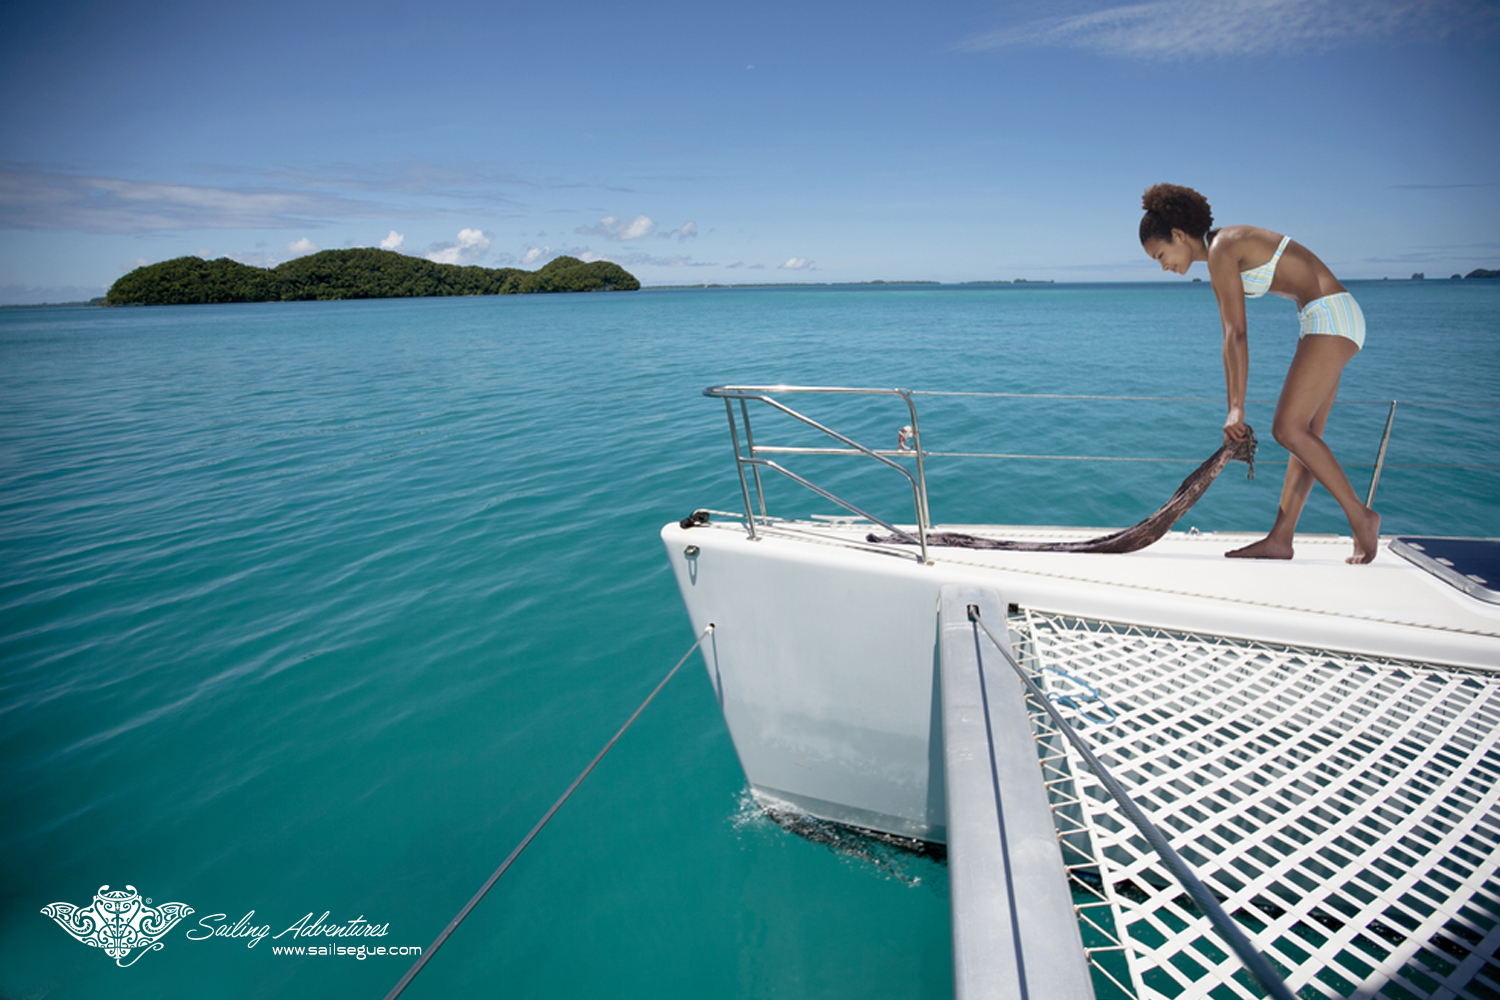 Unwind, de-stress, relax, FAR from the crowds in Palau